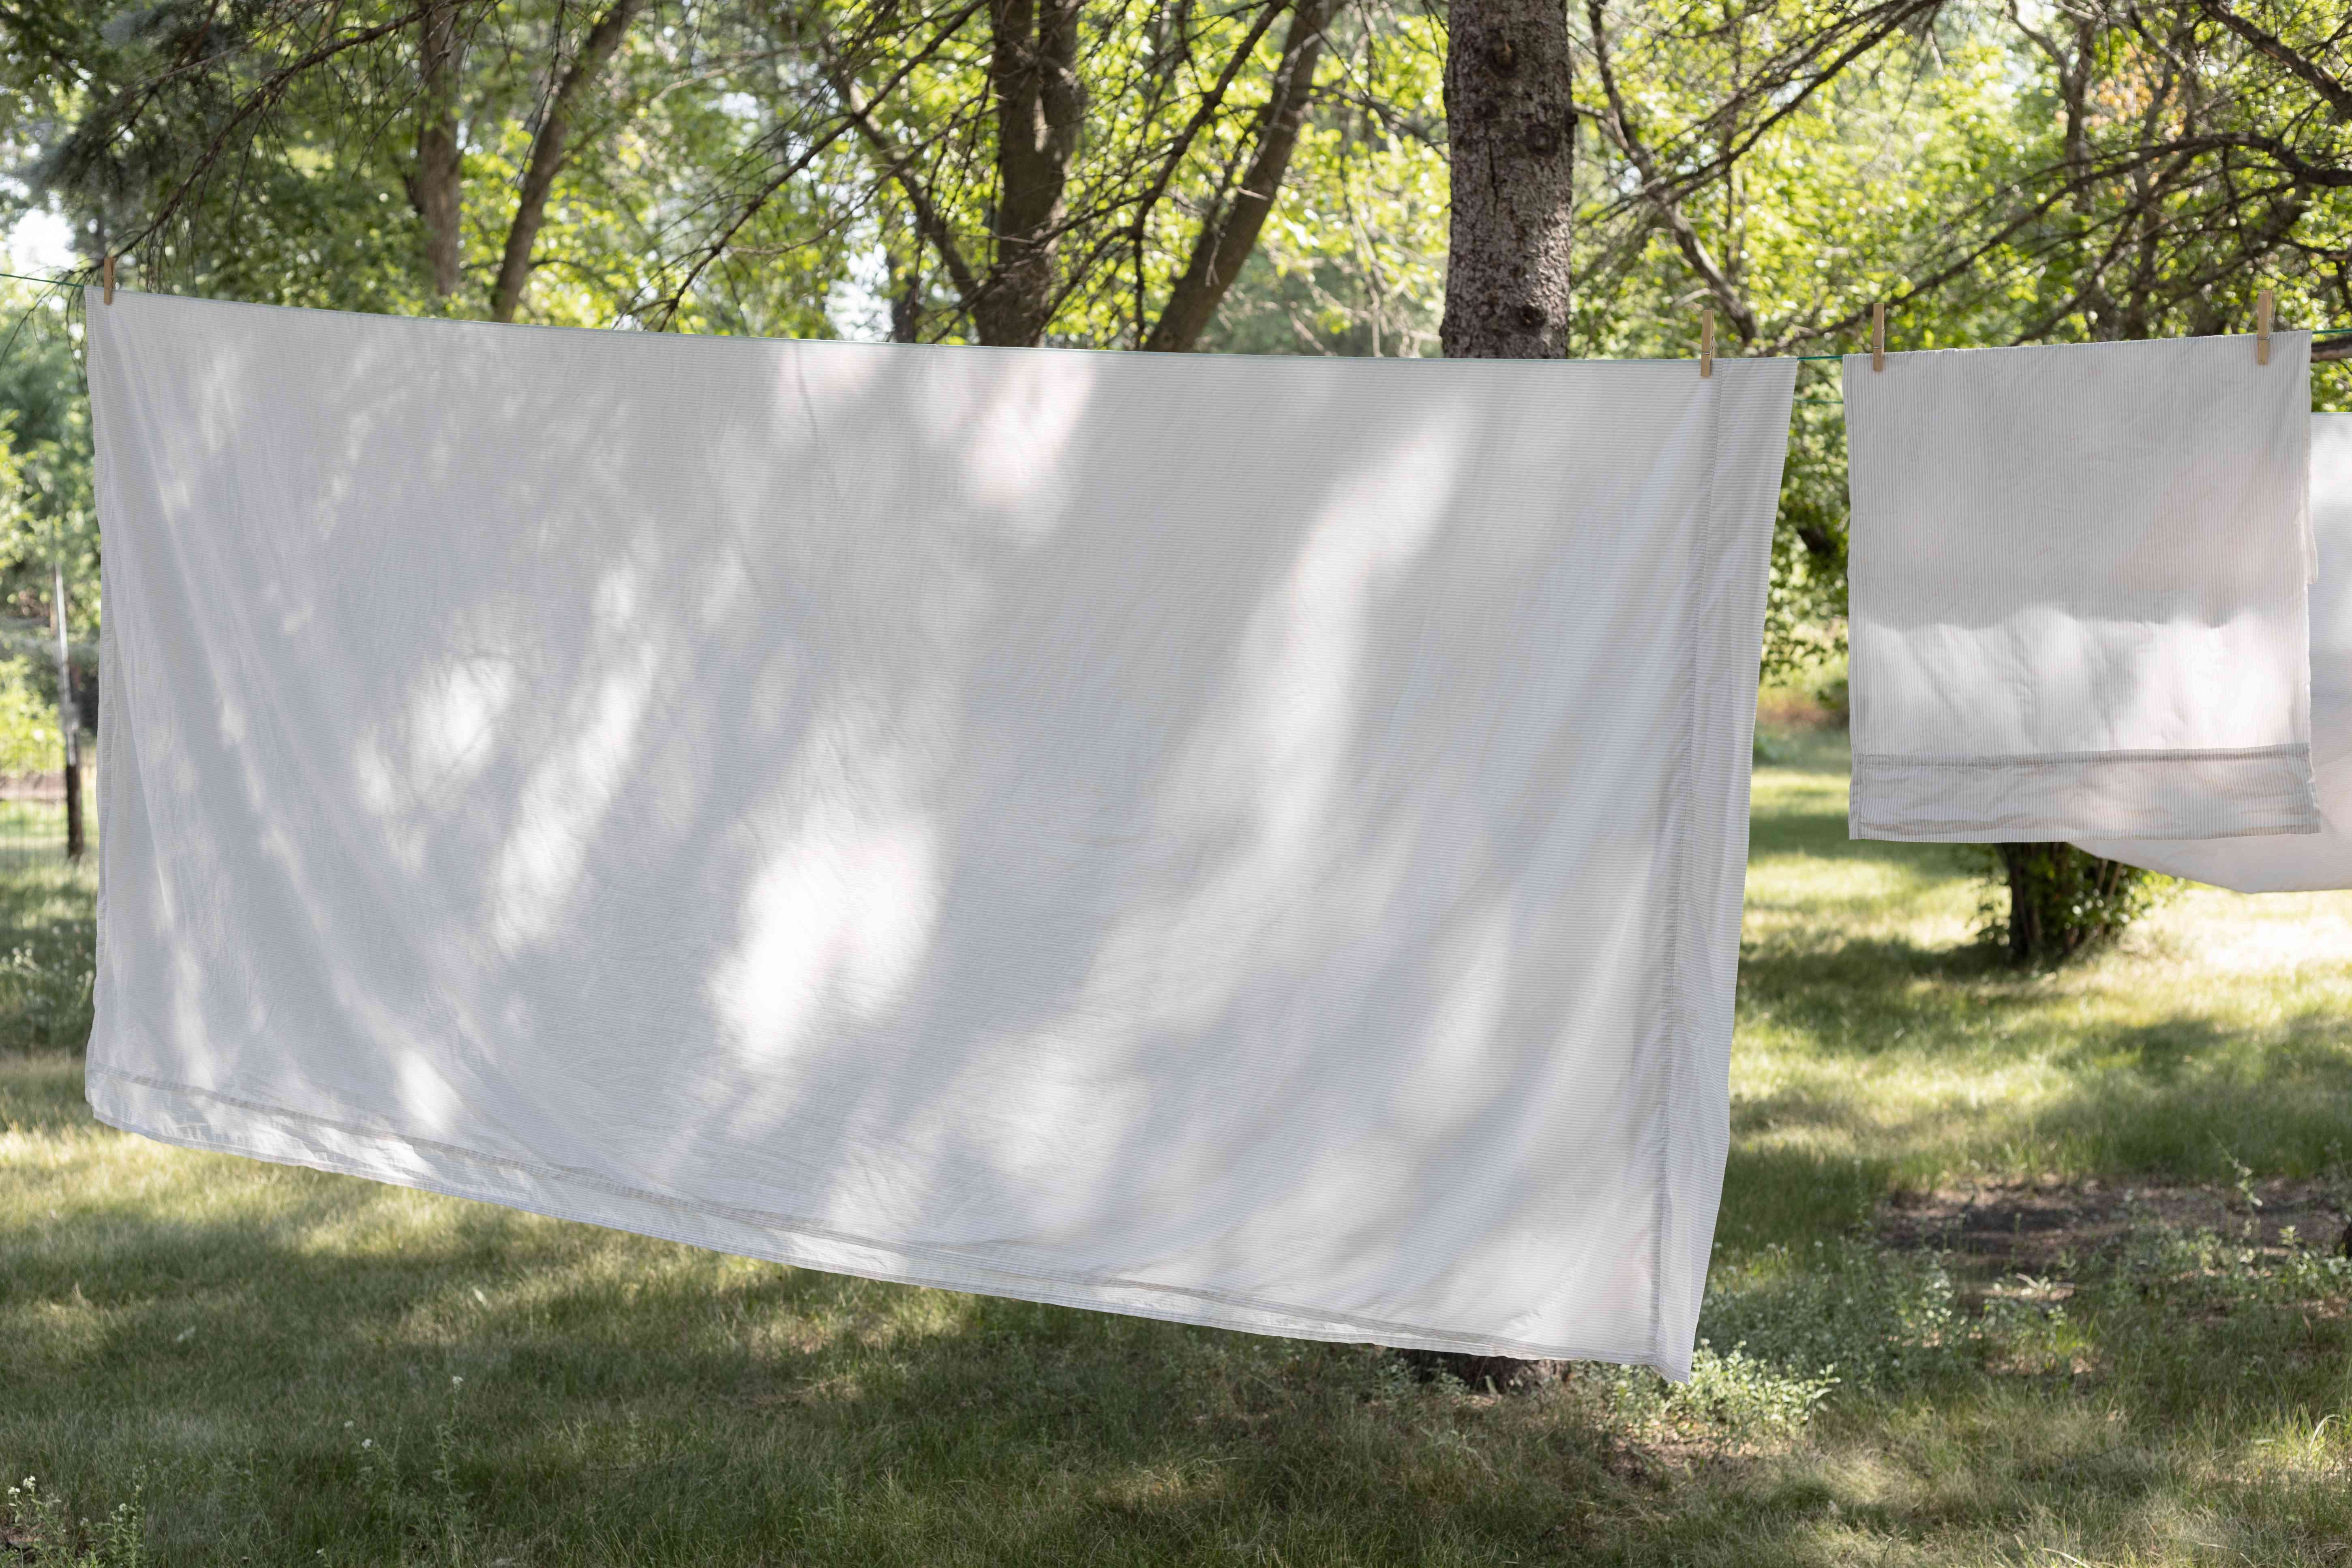 White sheets and towels being line dried to lower electricity bill